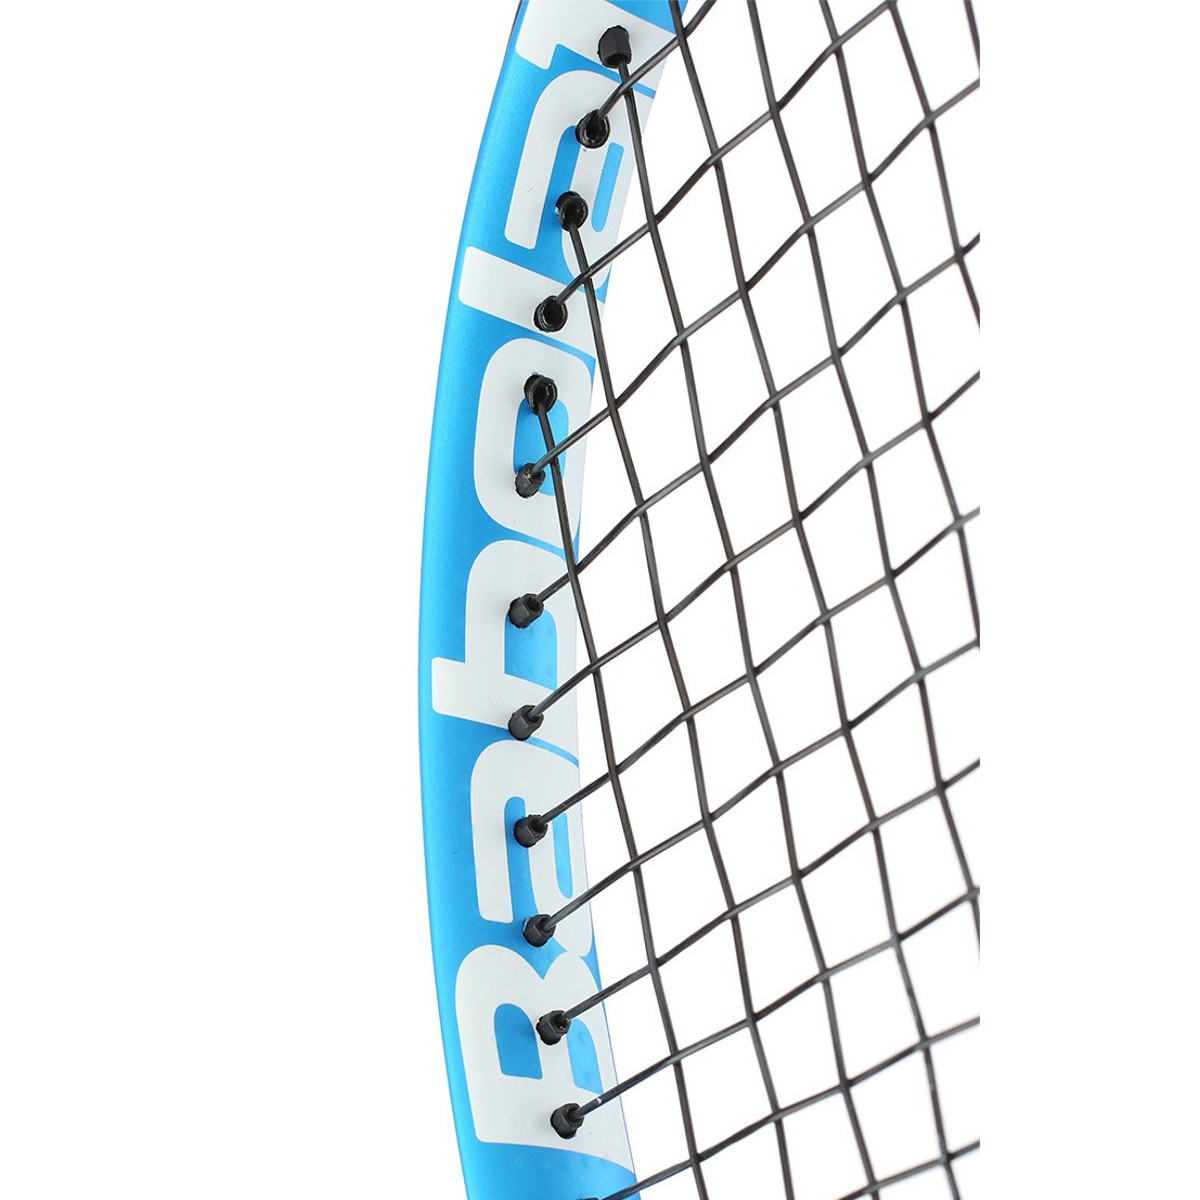 Теннисная ракетка BABOLAT PURE DRIVE JUNIOR 26 2018. Фото �3